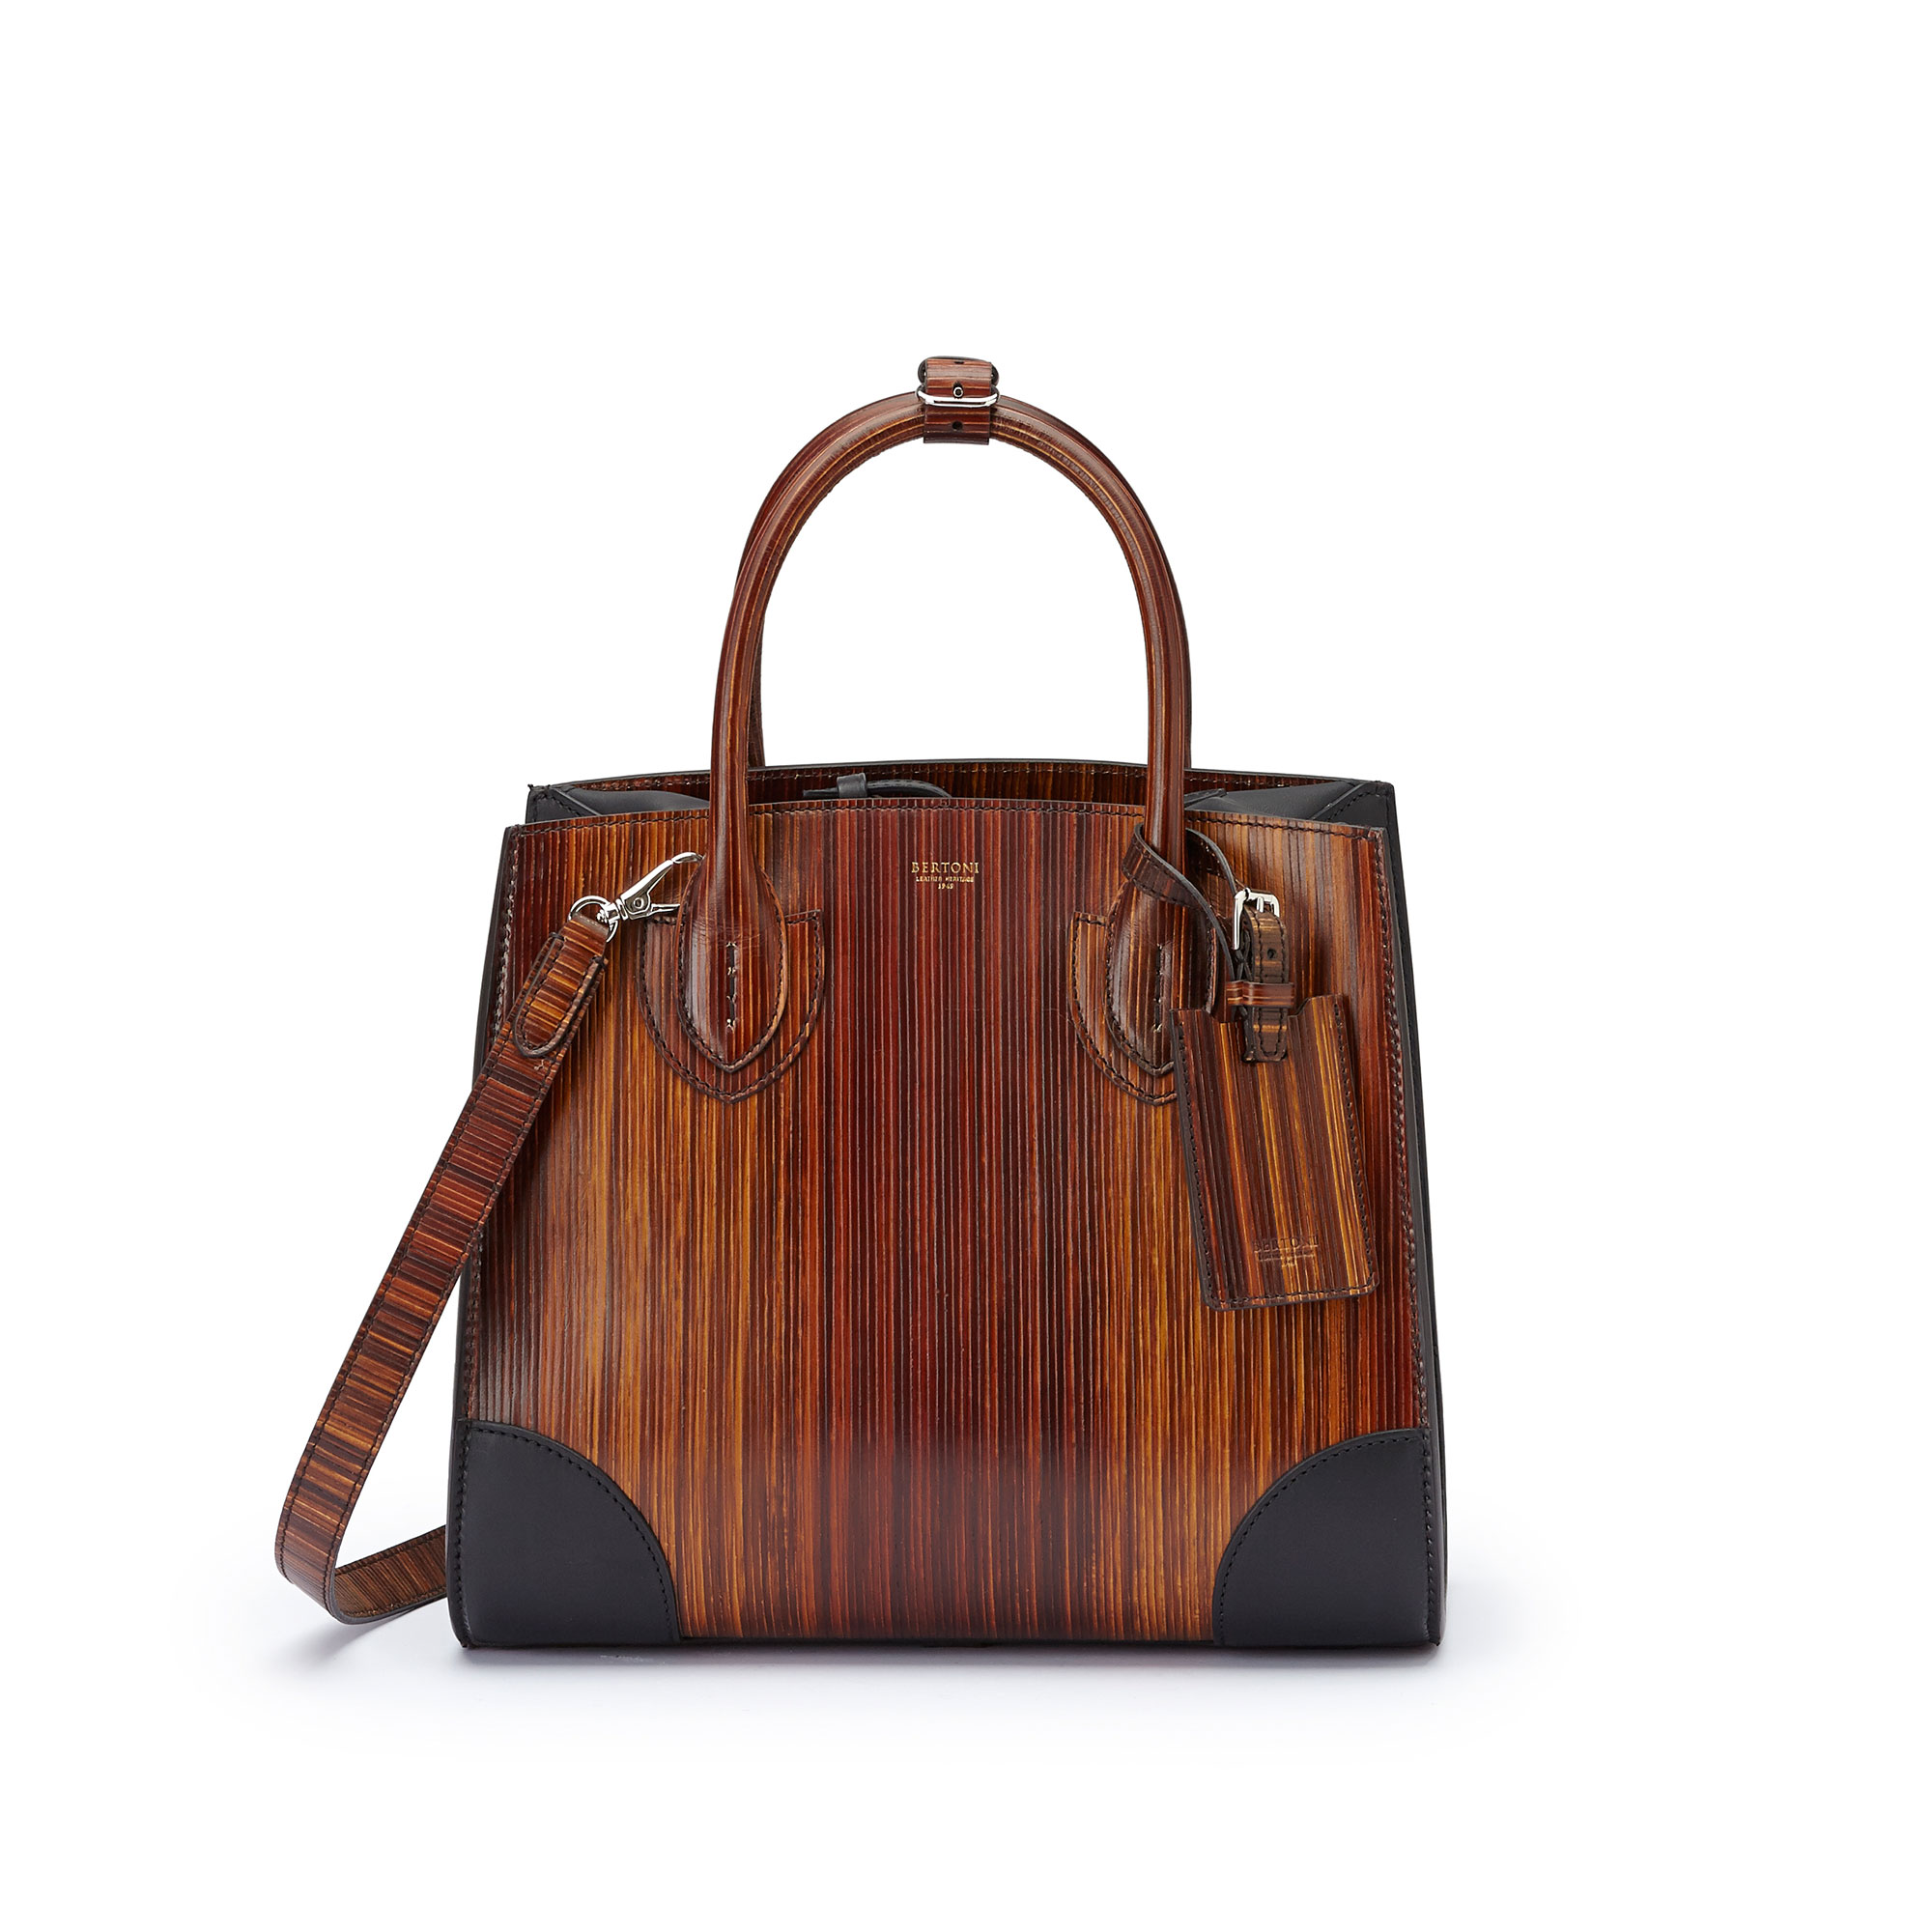 The wood effect french calf wood leather Darcy medium bag by Bertoni 1949 01